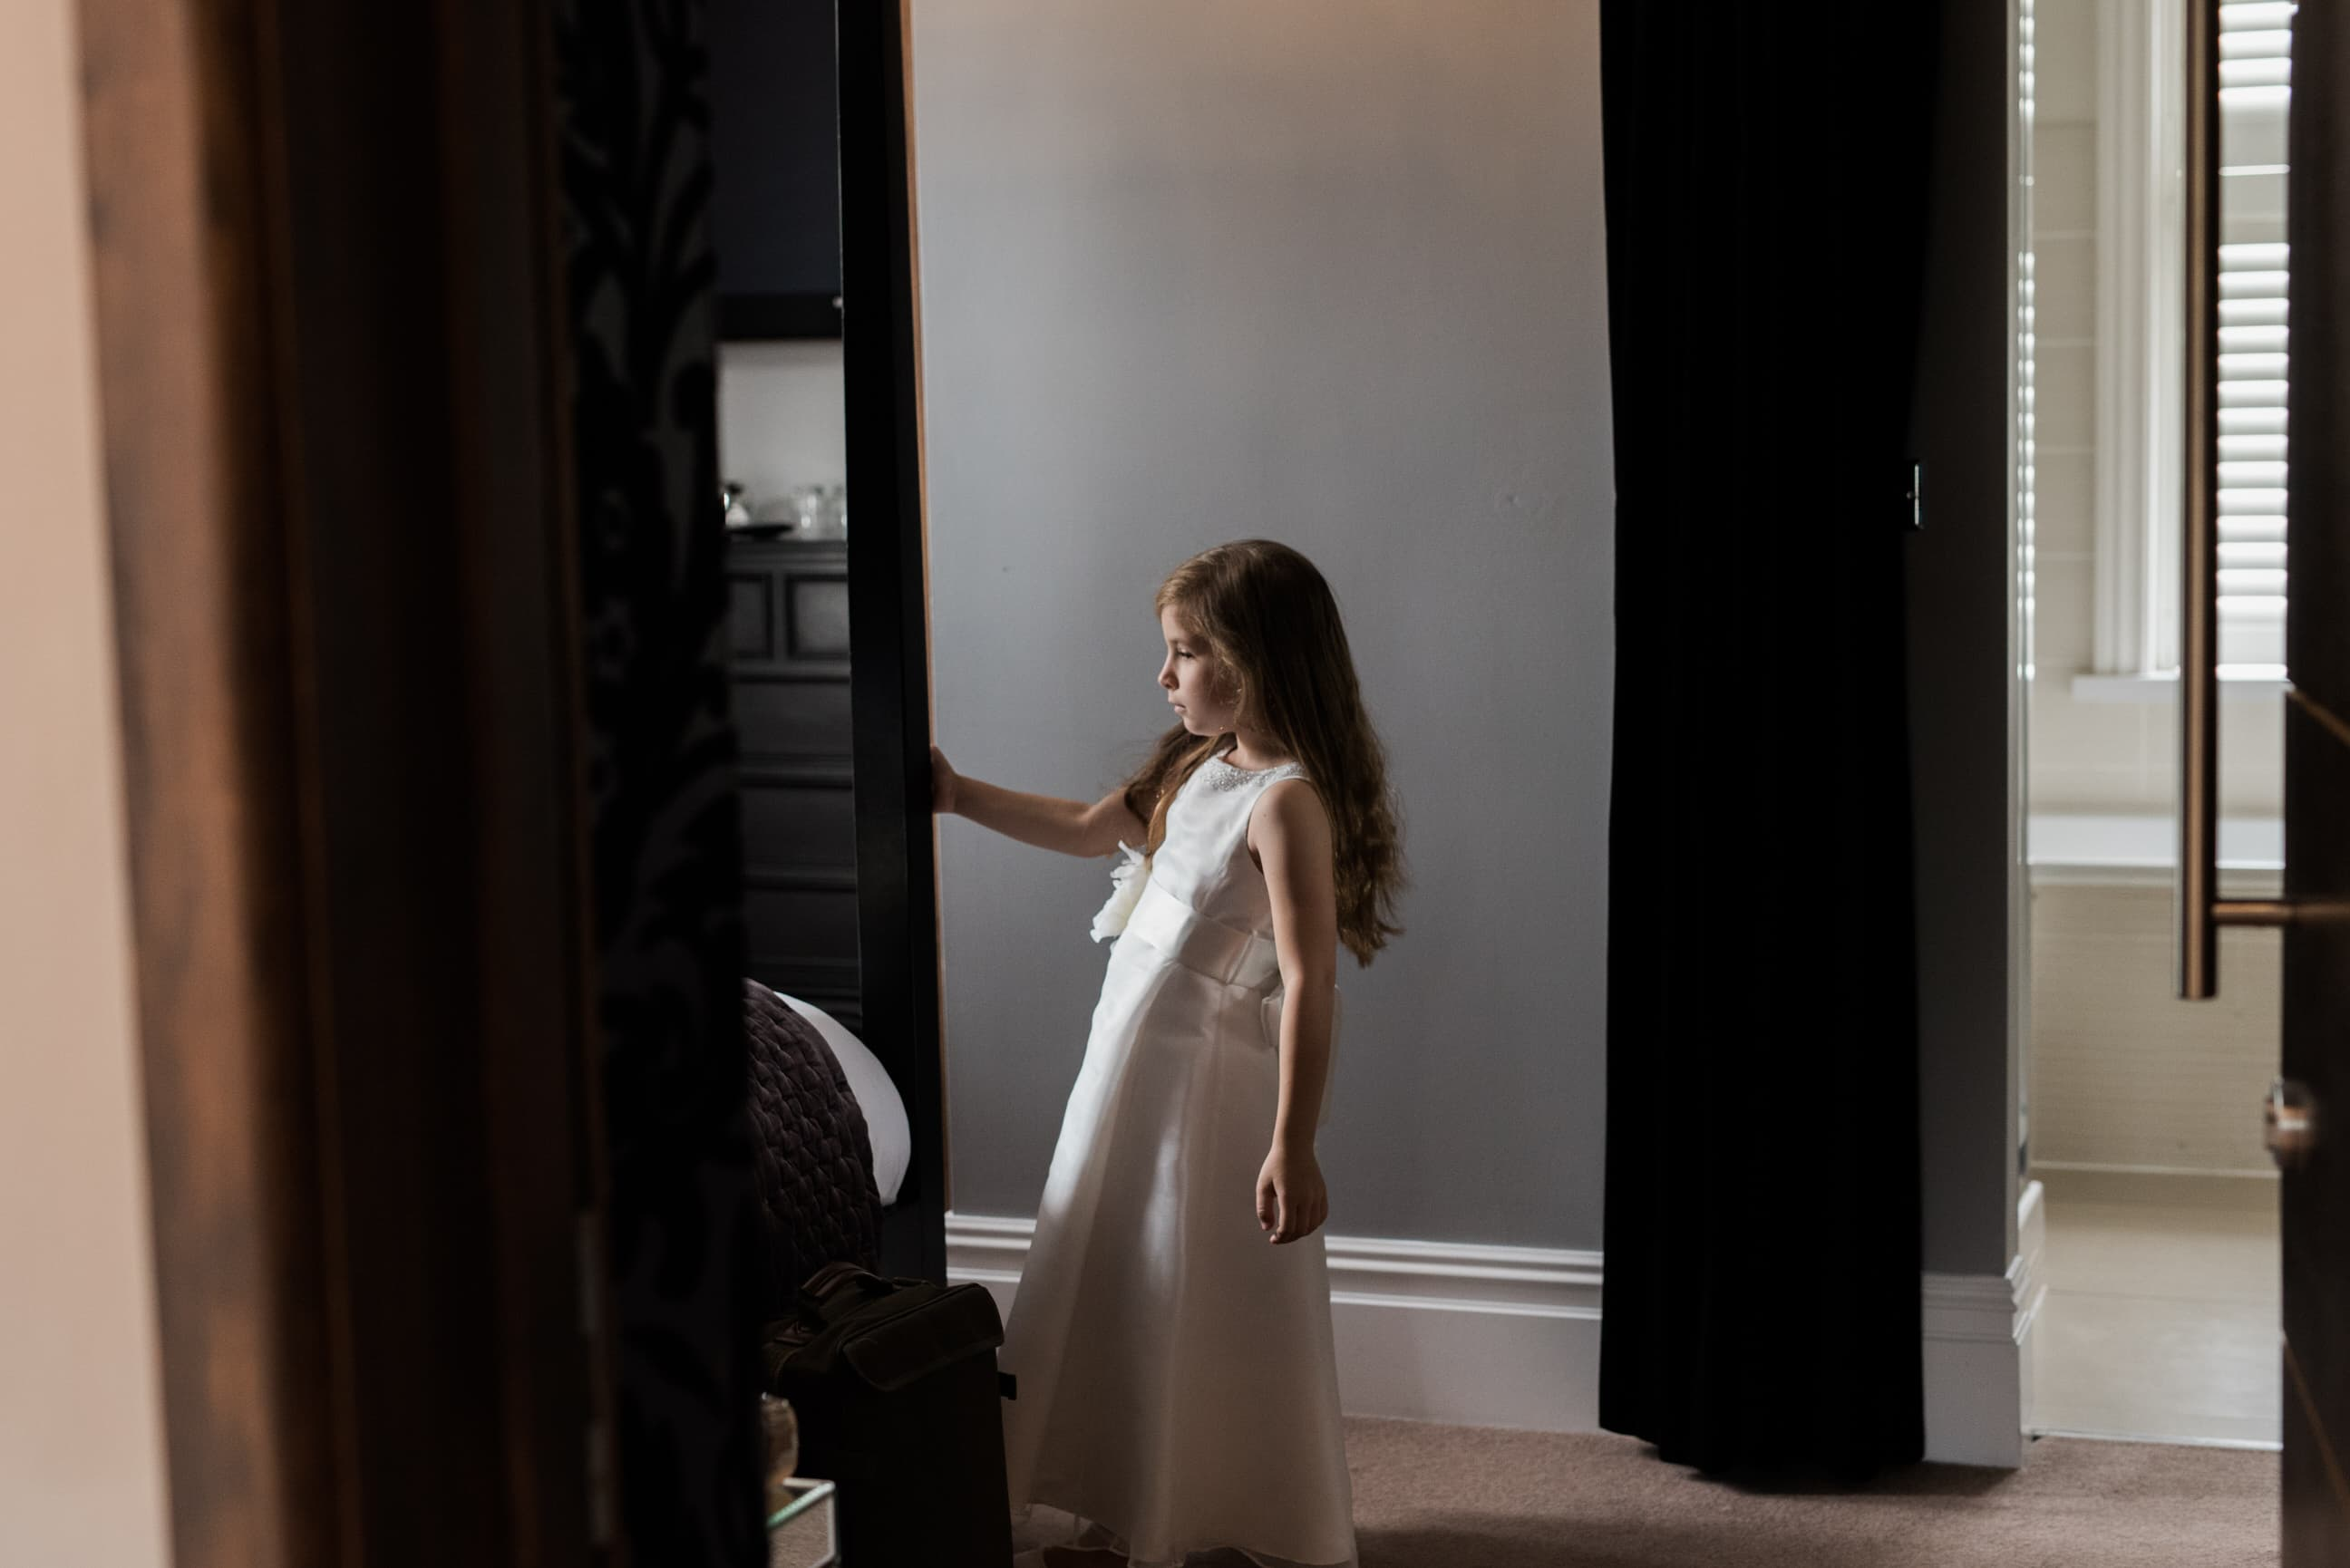 Young bridesmaid stood in a room